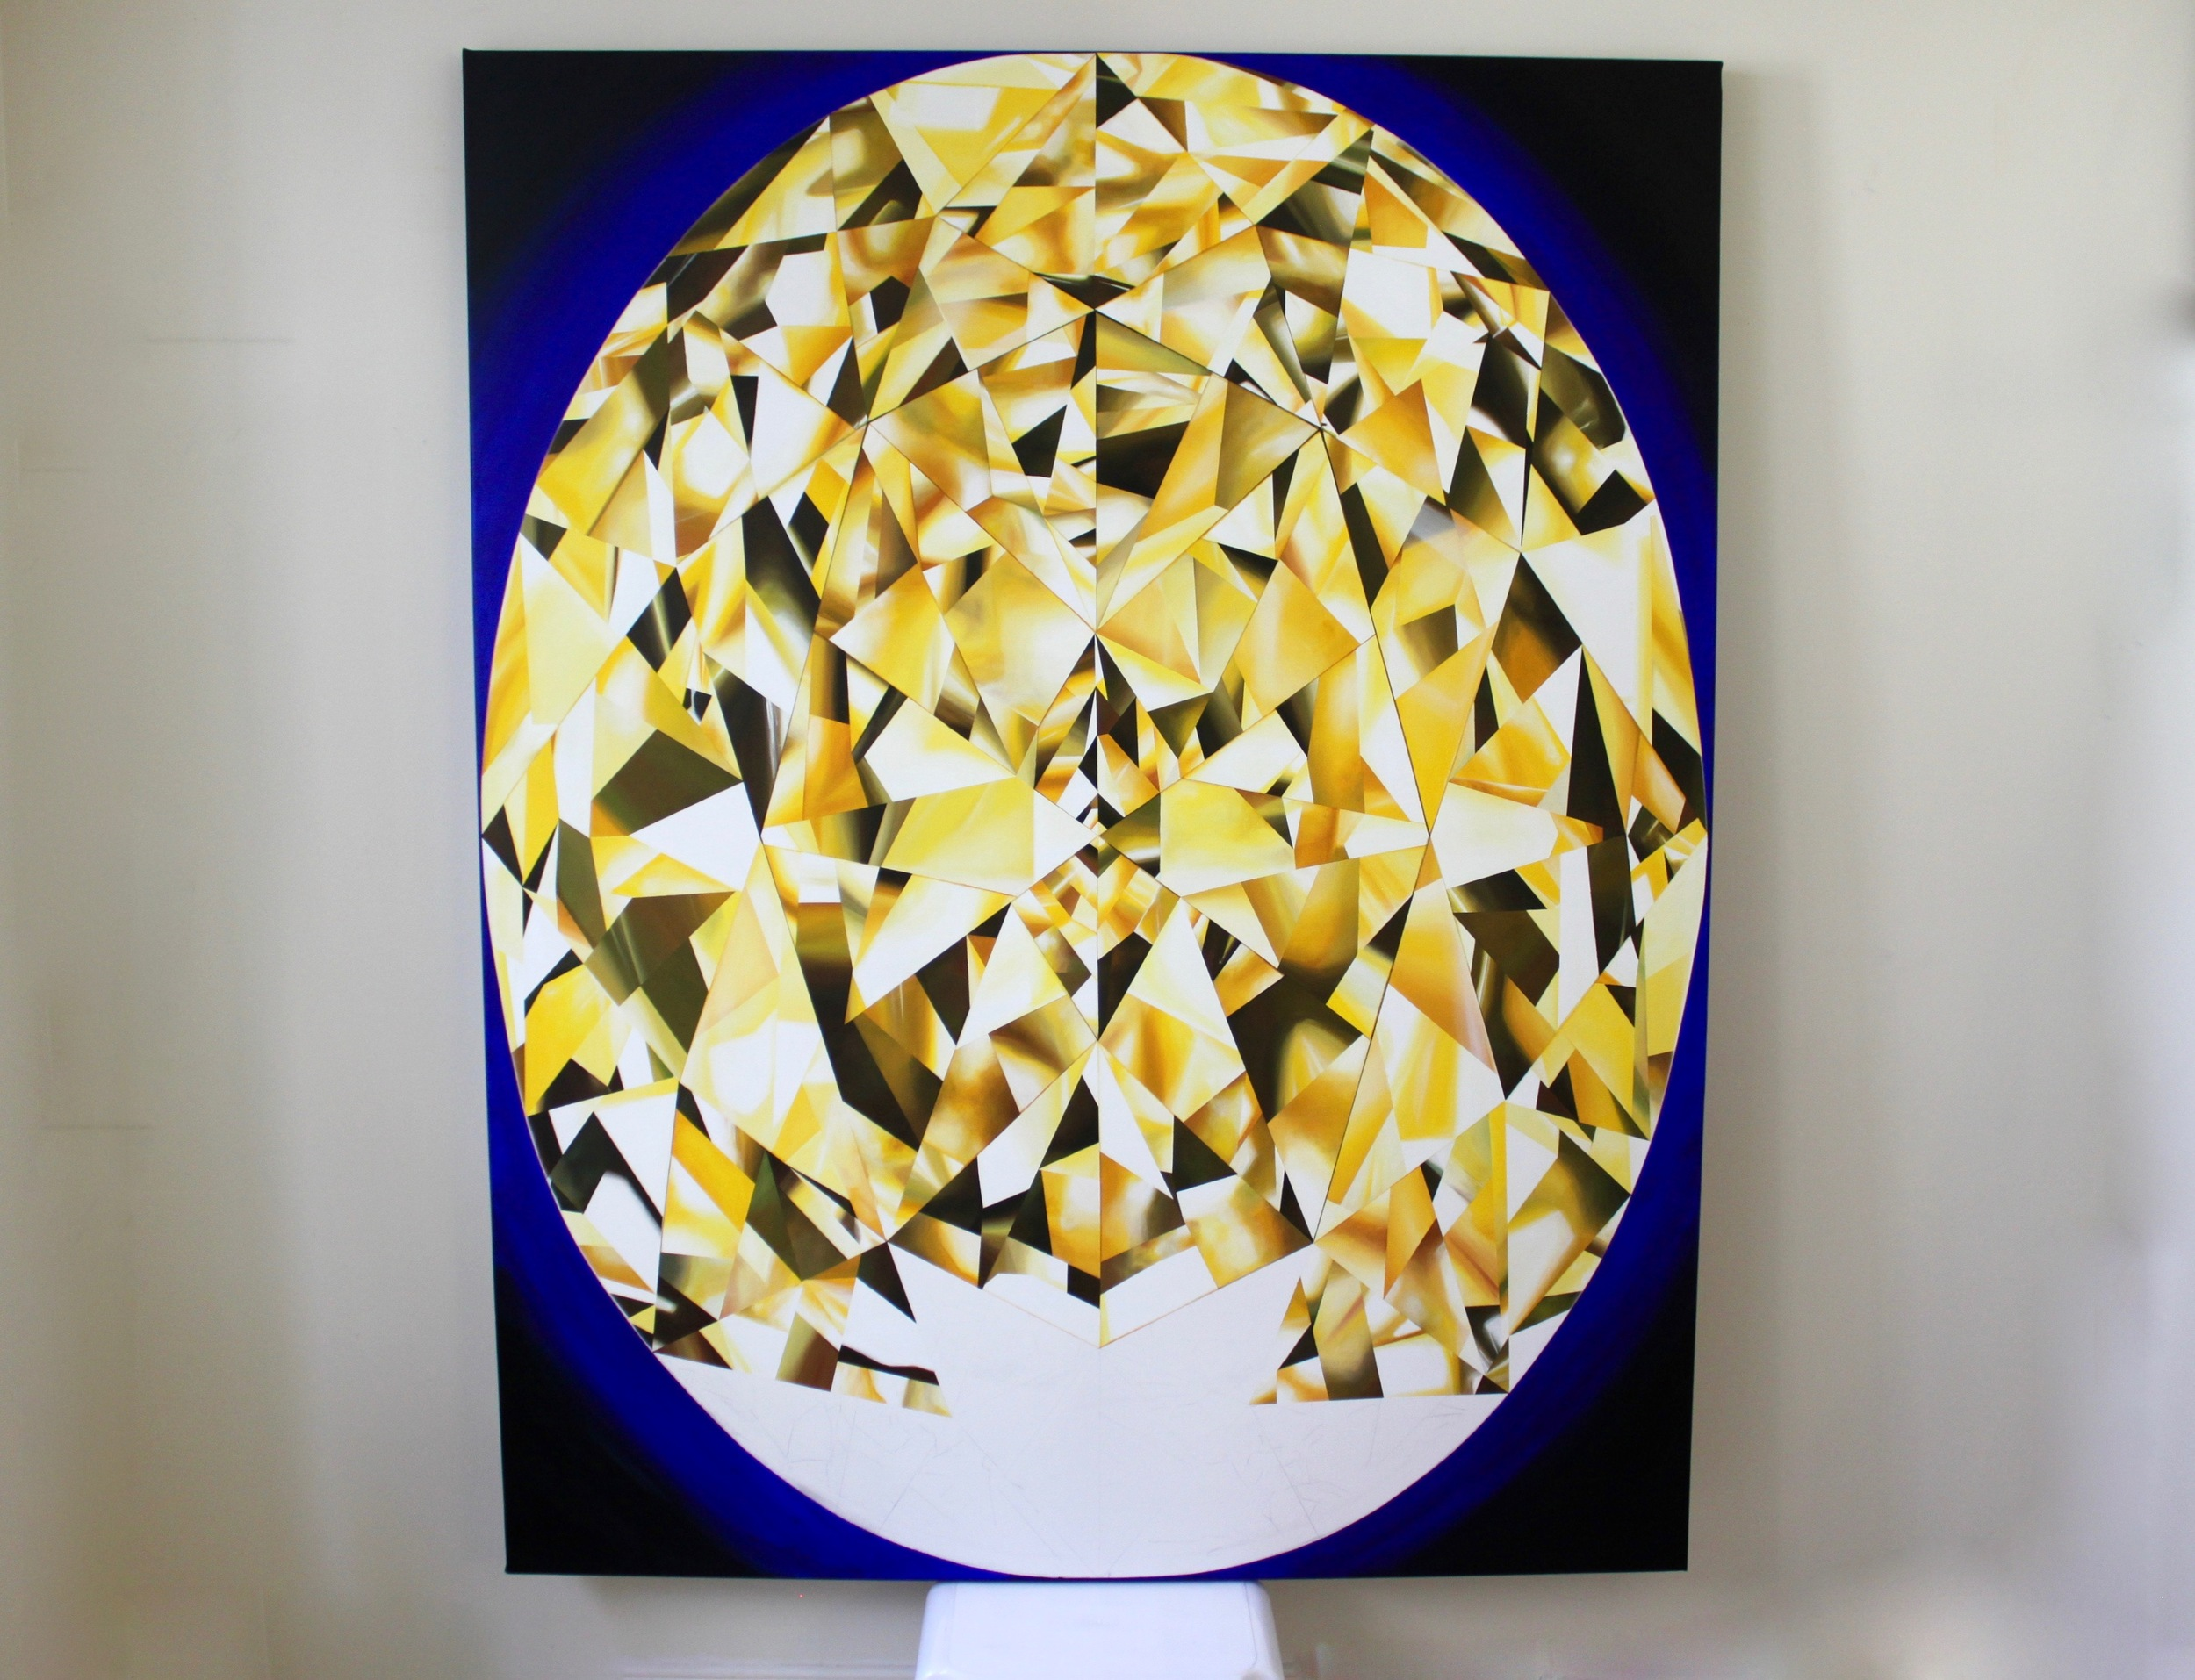 Towards completion! I felt a deep inner joy as I painted this over a few months period and I hope you feel the same as you view it. Making of 'The Portrait of Luminosity' - Portrait of an Oval Cut Yellow Diamond. 60 x 48 inches. Acrylic on Canvas. ©Reena Ahluwalia